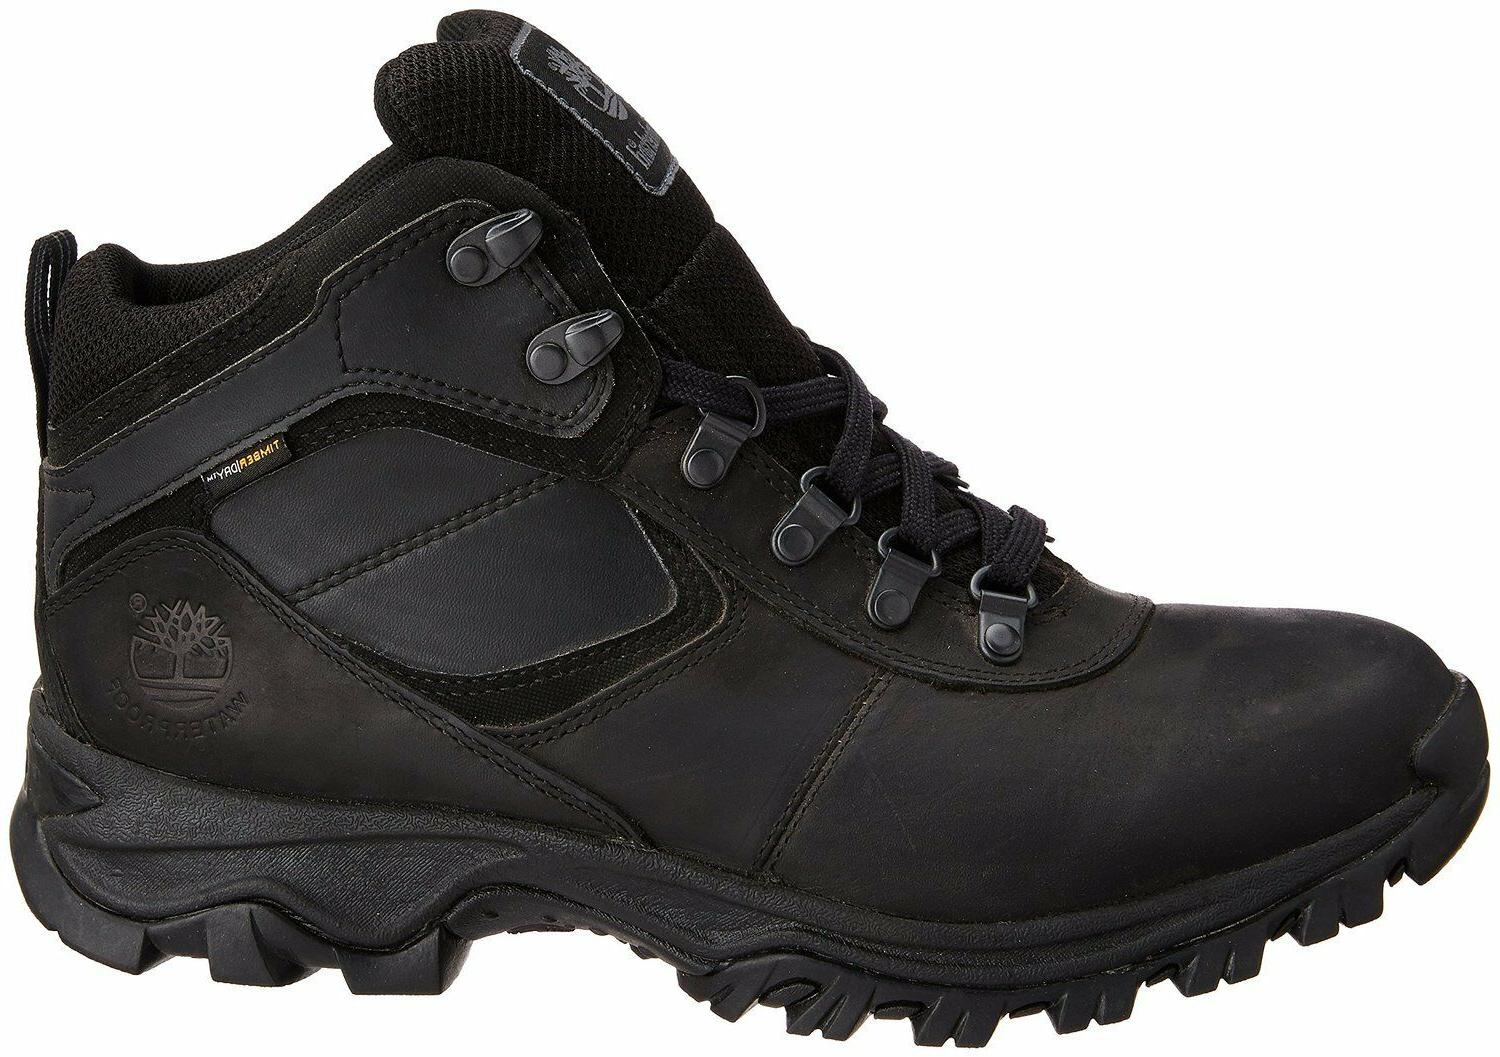 Men's Timberland Mid Waterproof Hiking Black 2731R Wide